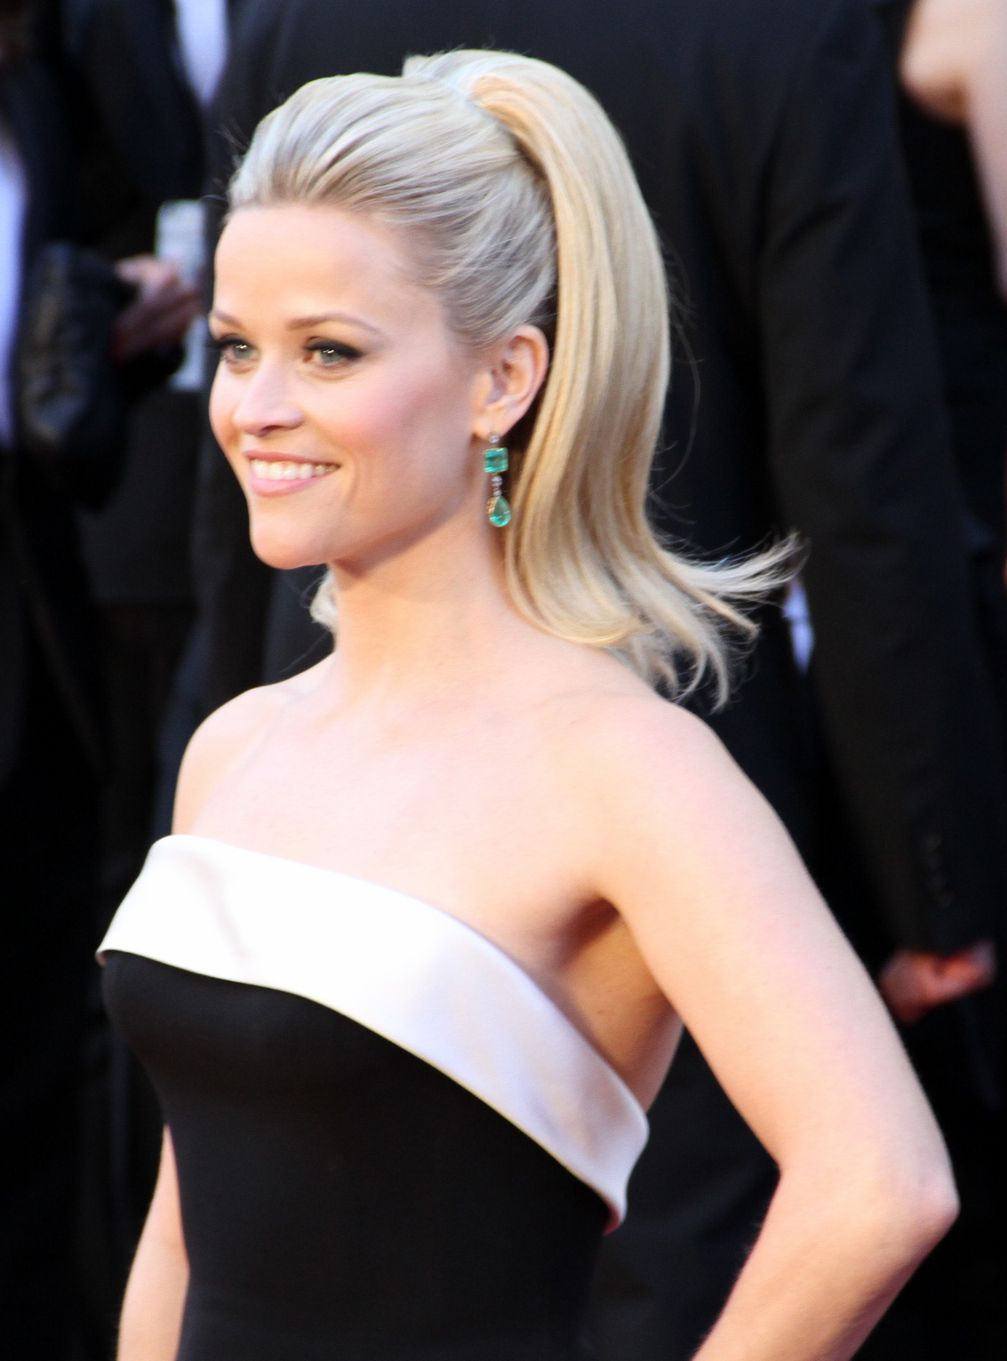 Reese Witherspoon bei der Oscarverleihung 2011